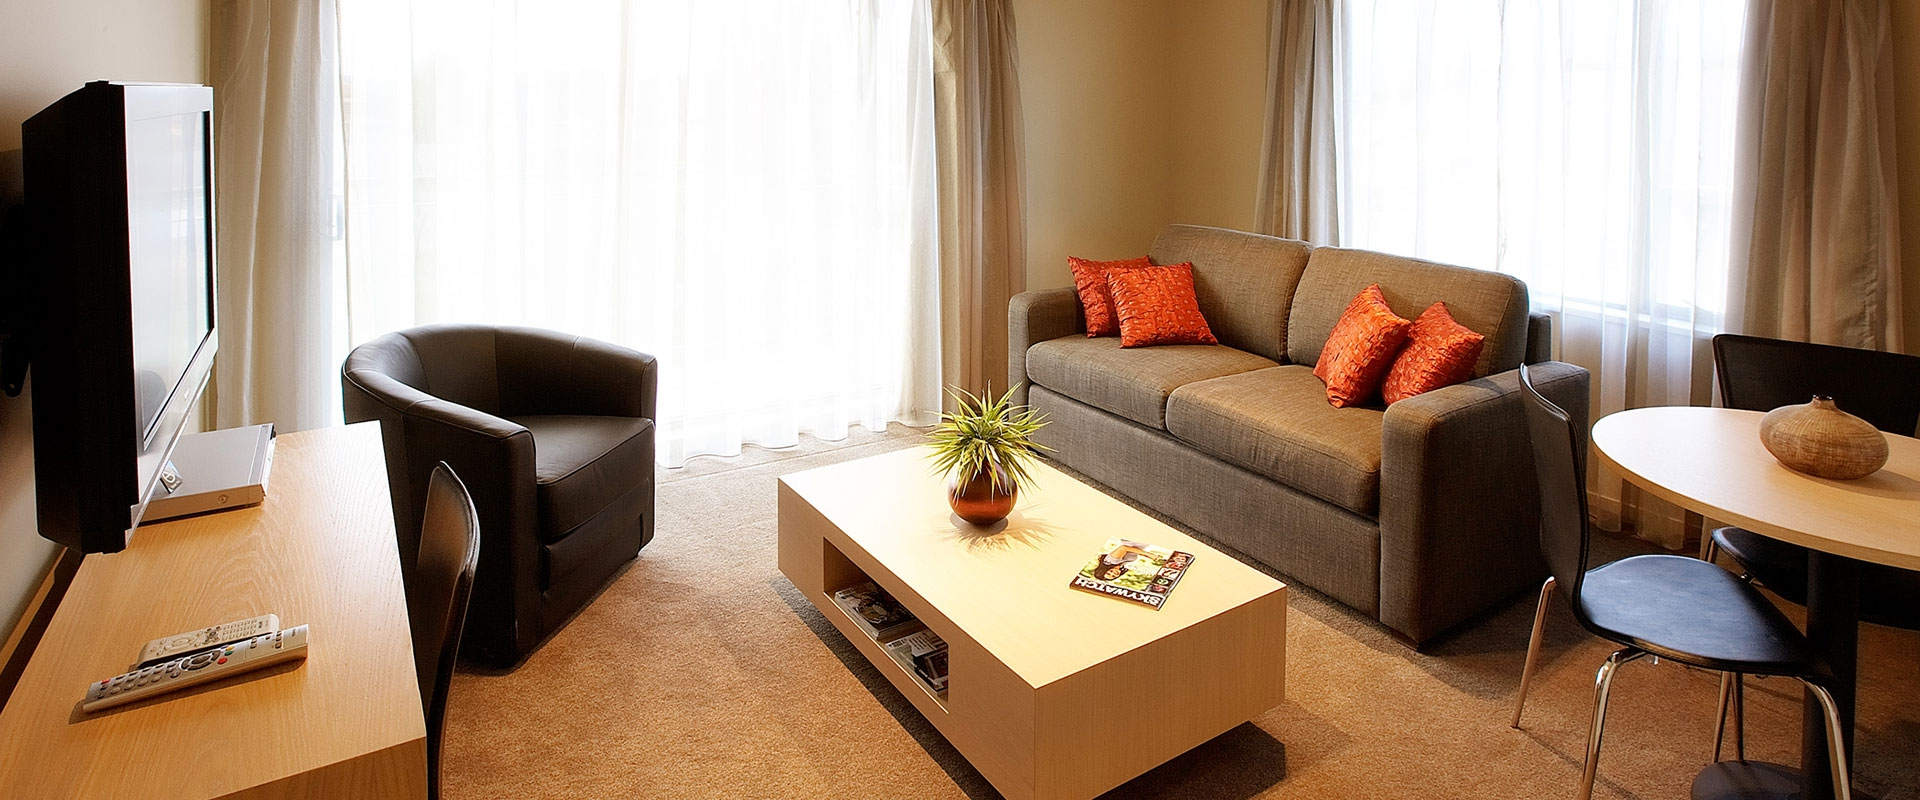 self-contained apartments ideal for families